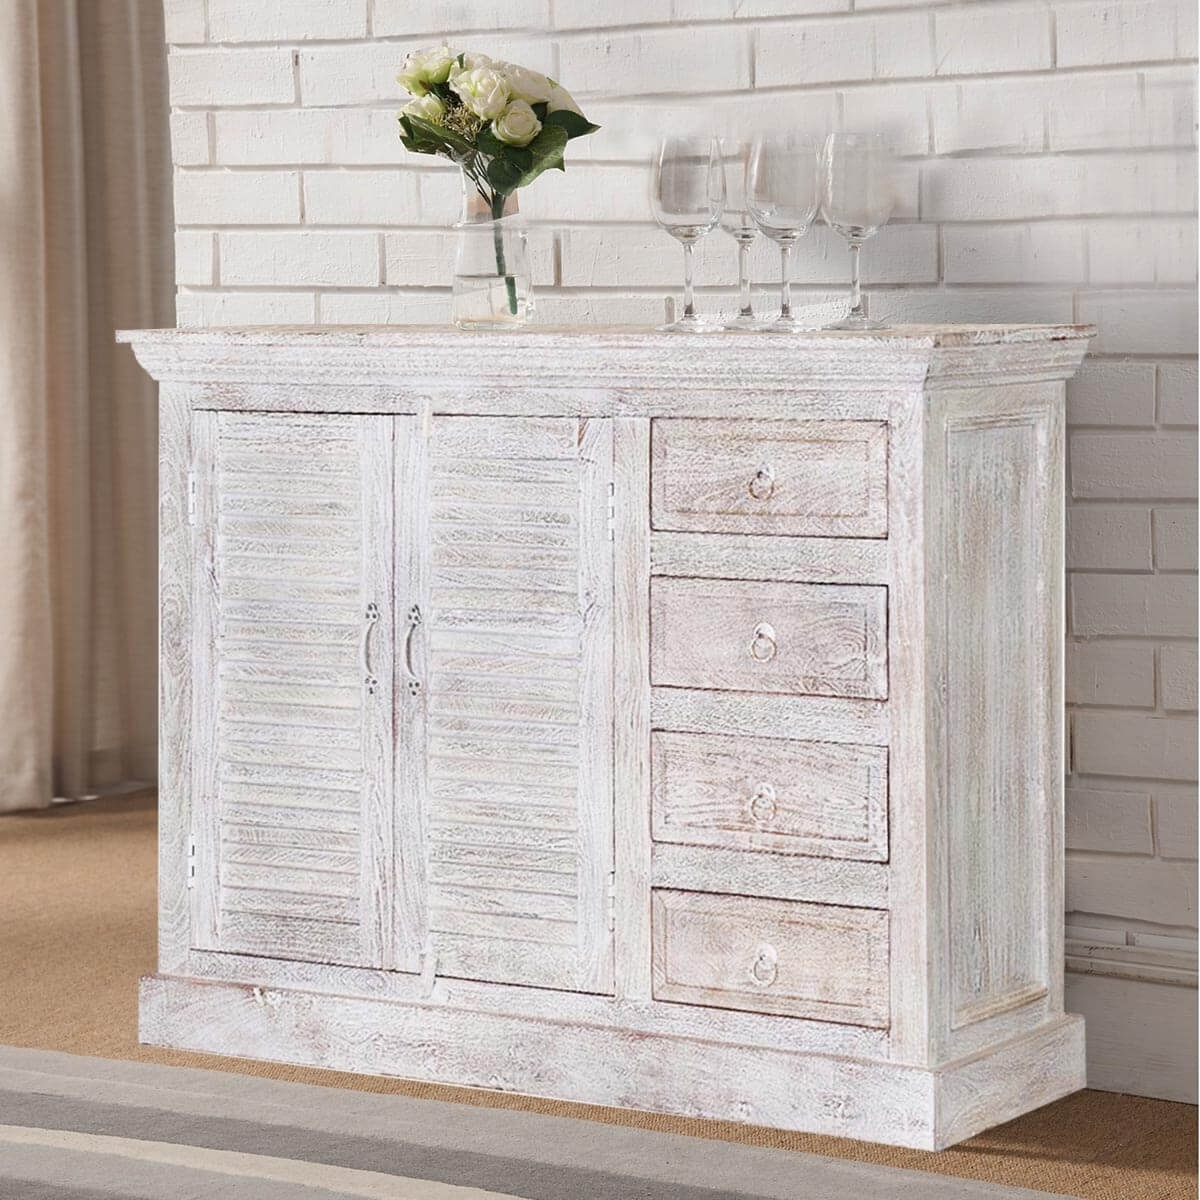 Ohio Rustic White Weathered Finish 2 Door 4 Drawer Sideboard Intended For Latest Vintage Finish 4 Door Sideboards (View 8 of 20)